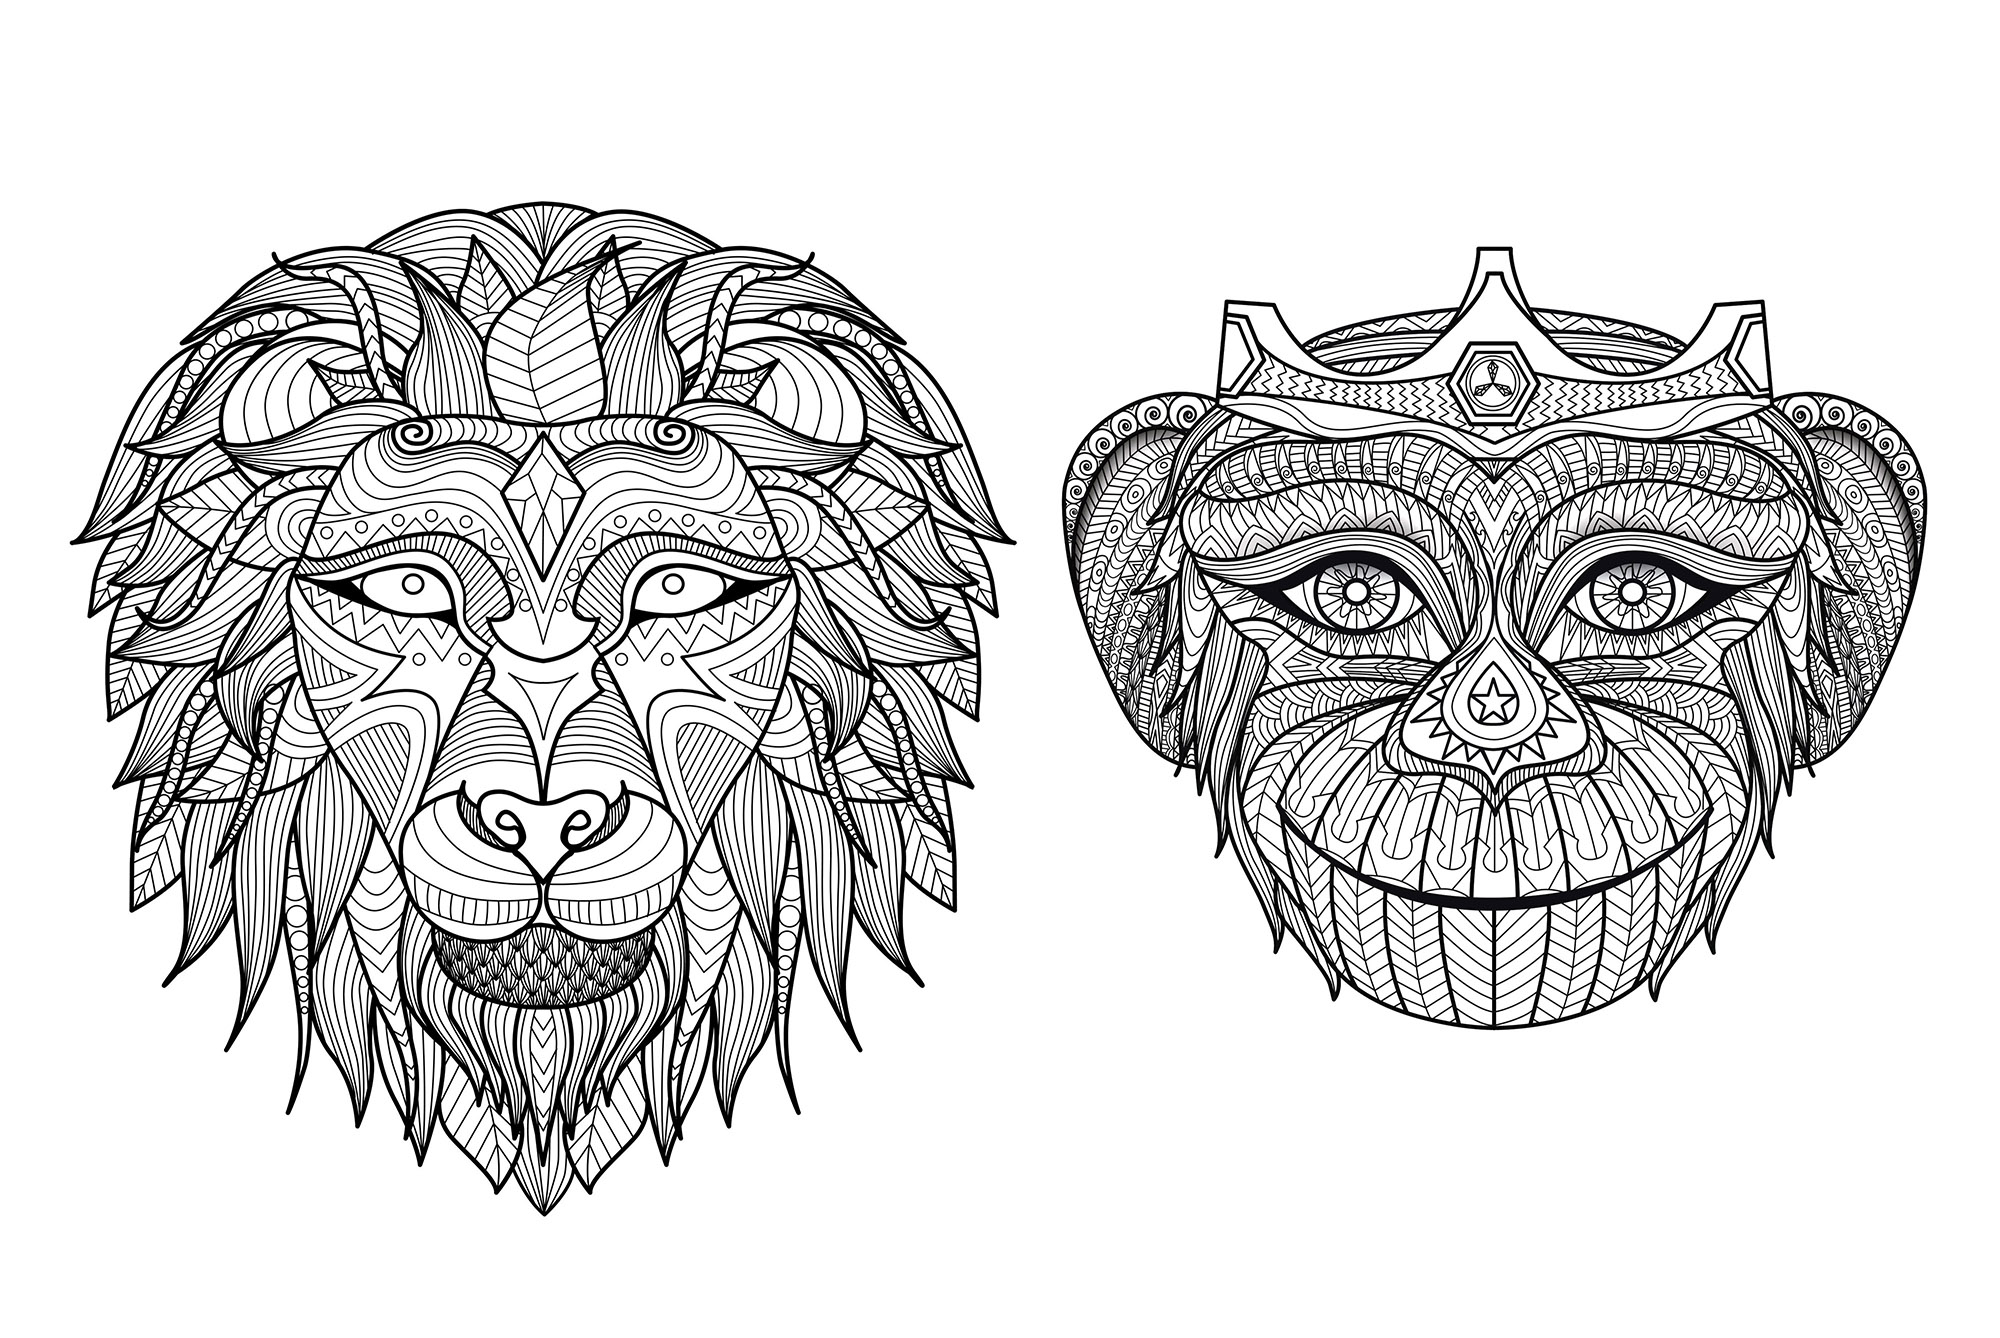 Heads Monkey Lion Monkeys Coloring Pages For Adults Justcolor